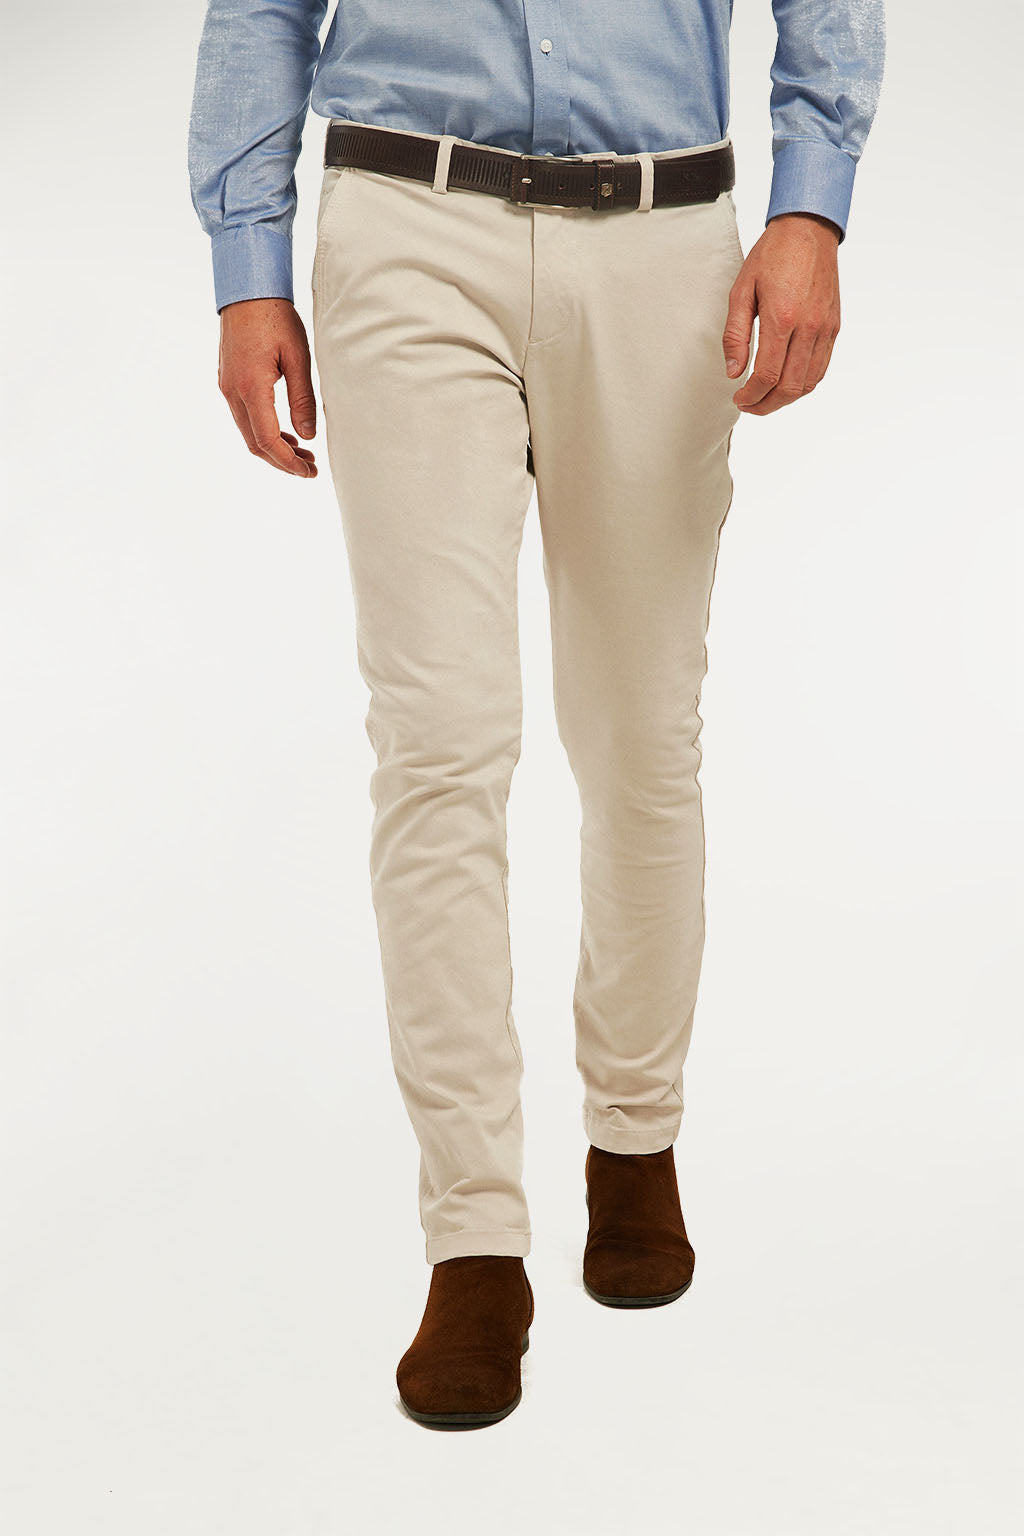 Pantalón Slim Fit Crudo